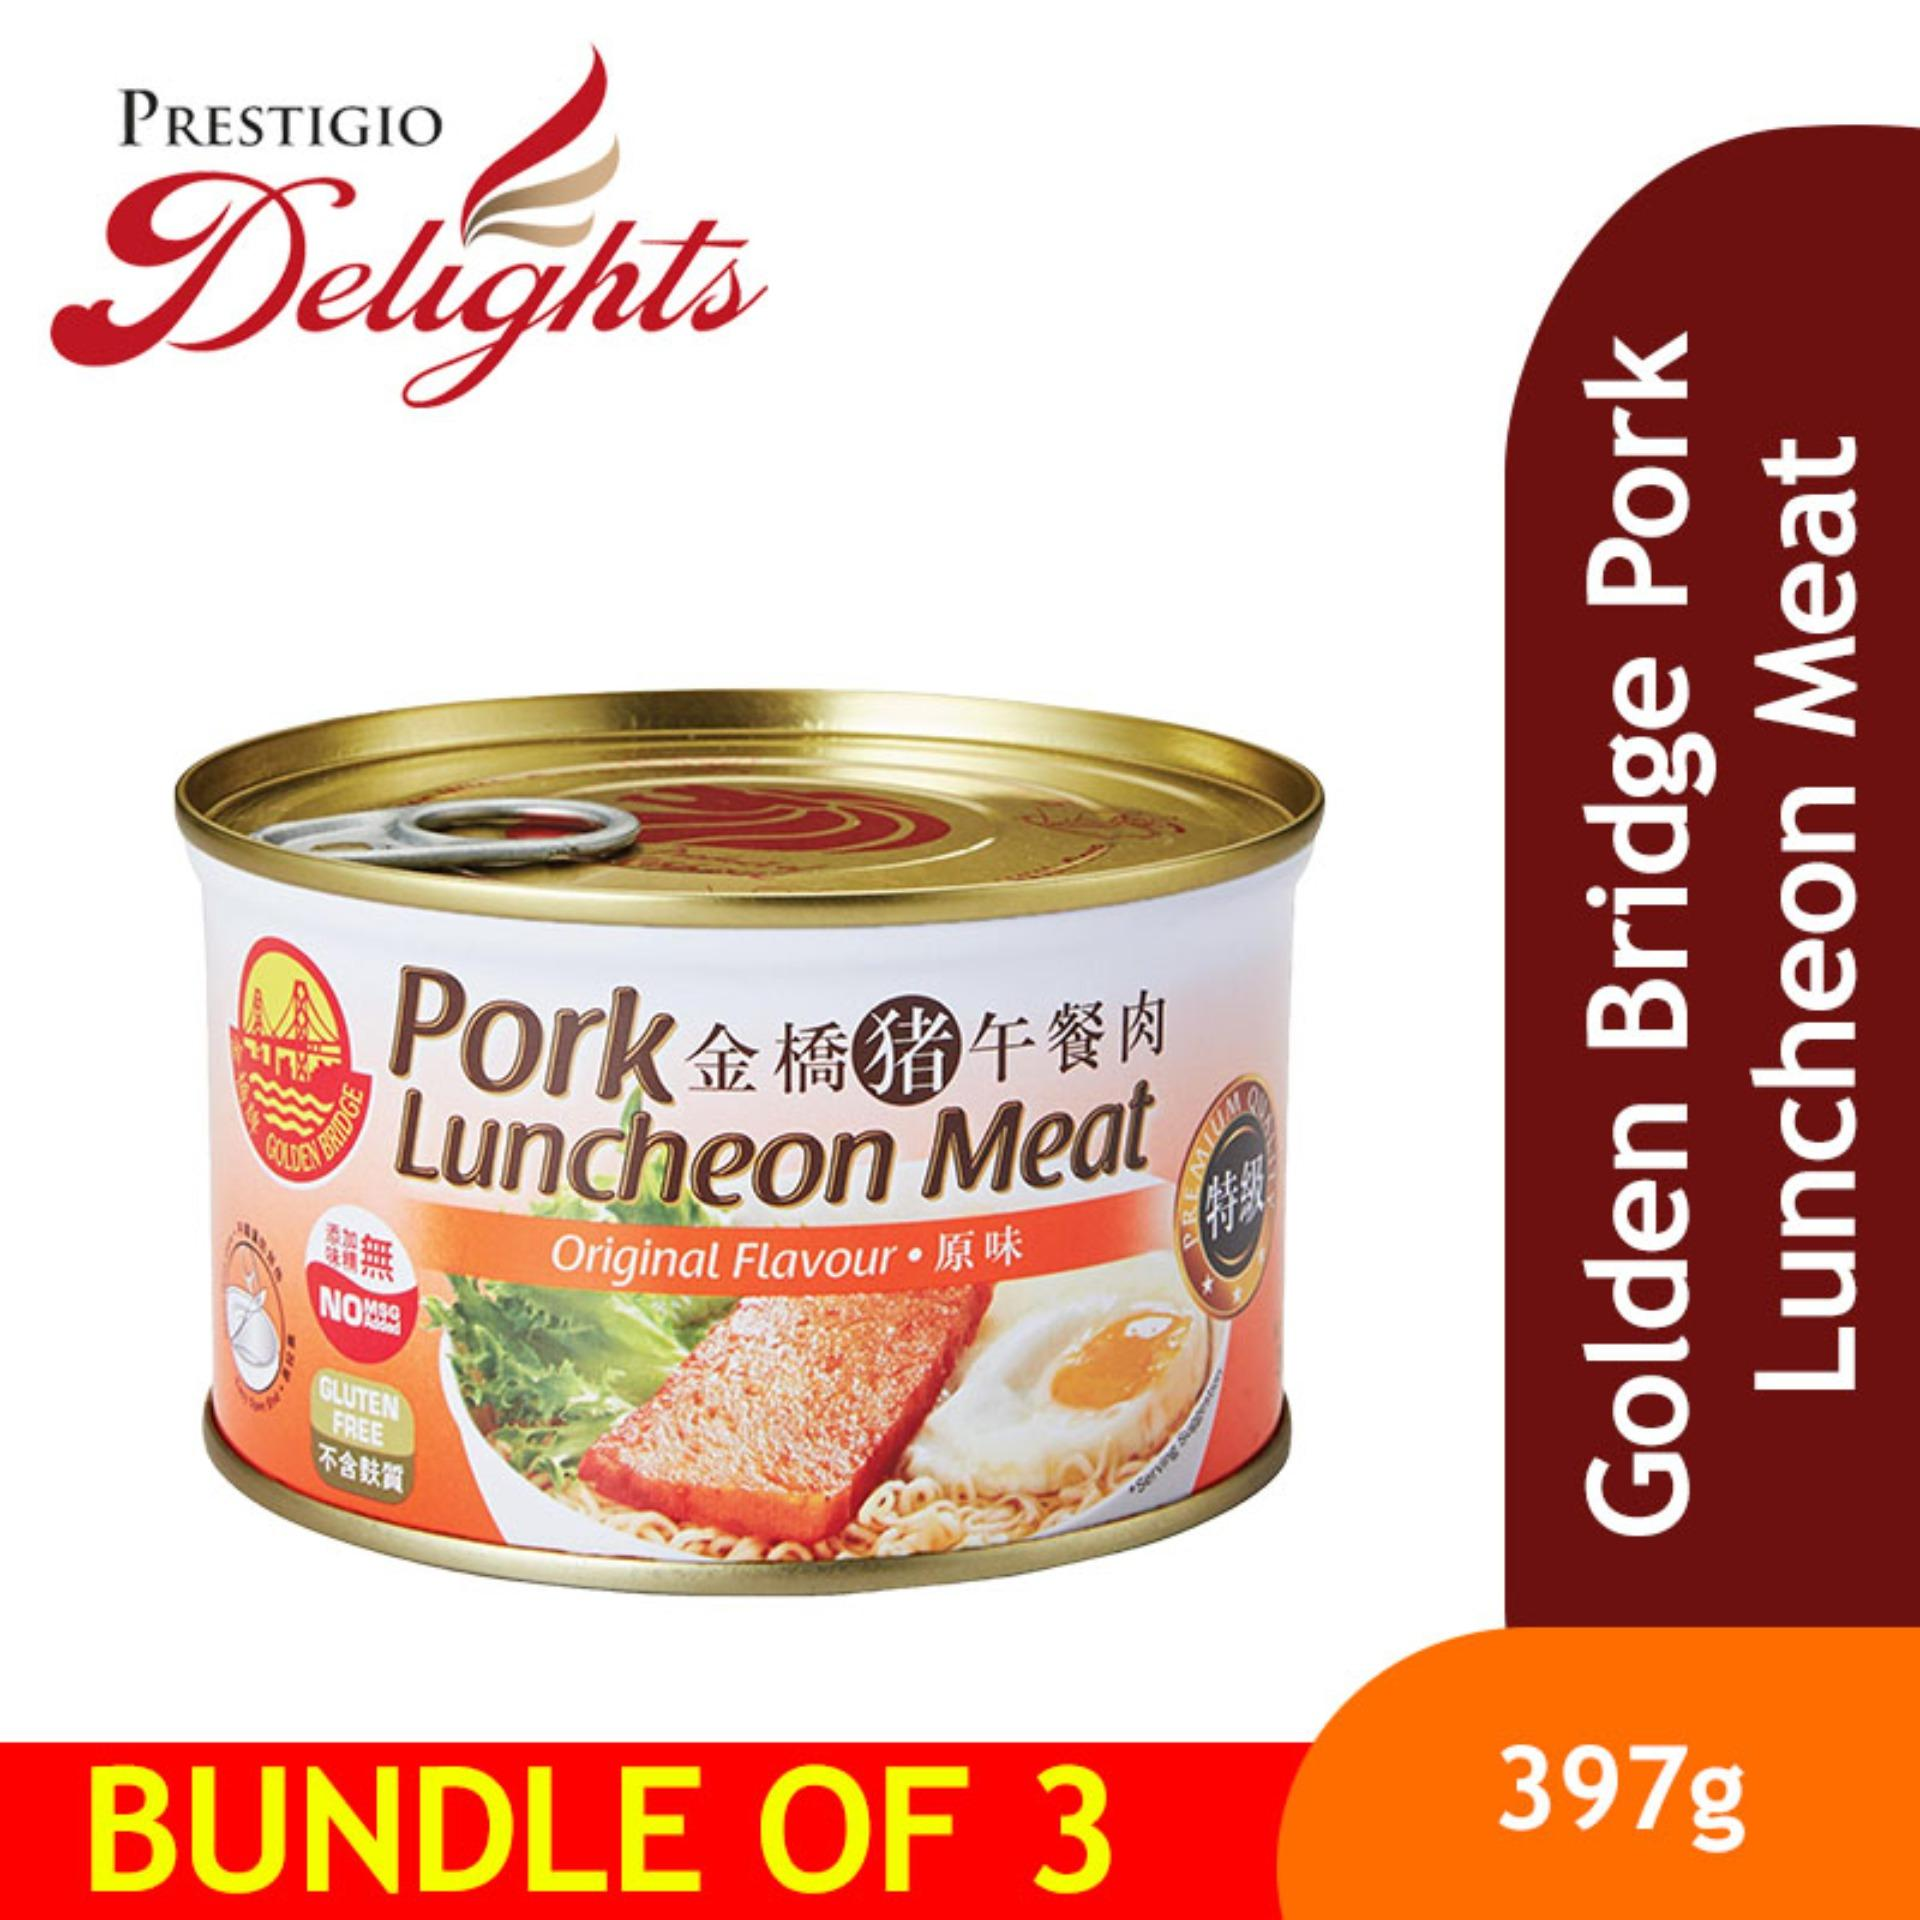 Golden Bridge Pork Luncheon Meat 397g Bundle Of 3 By Prestigio Delights.